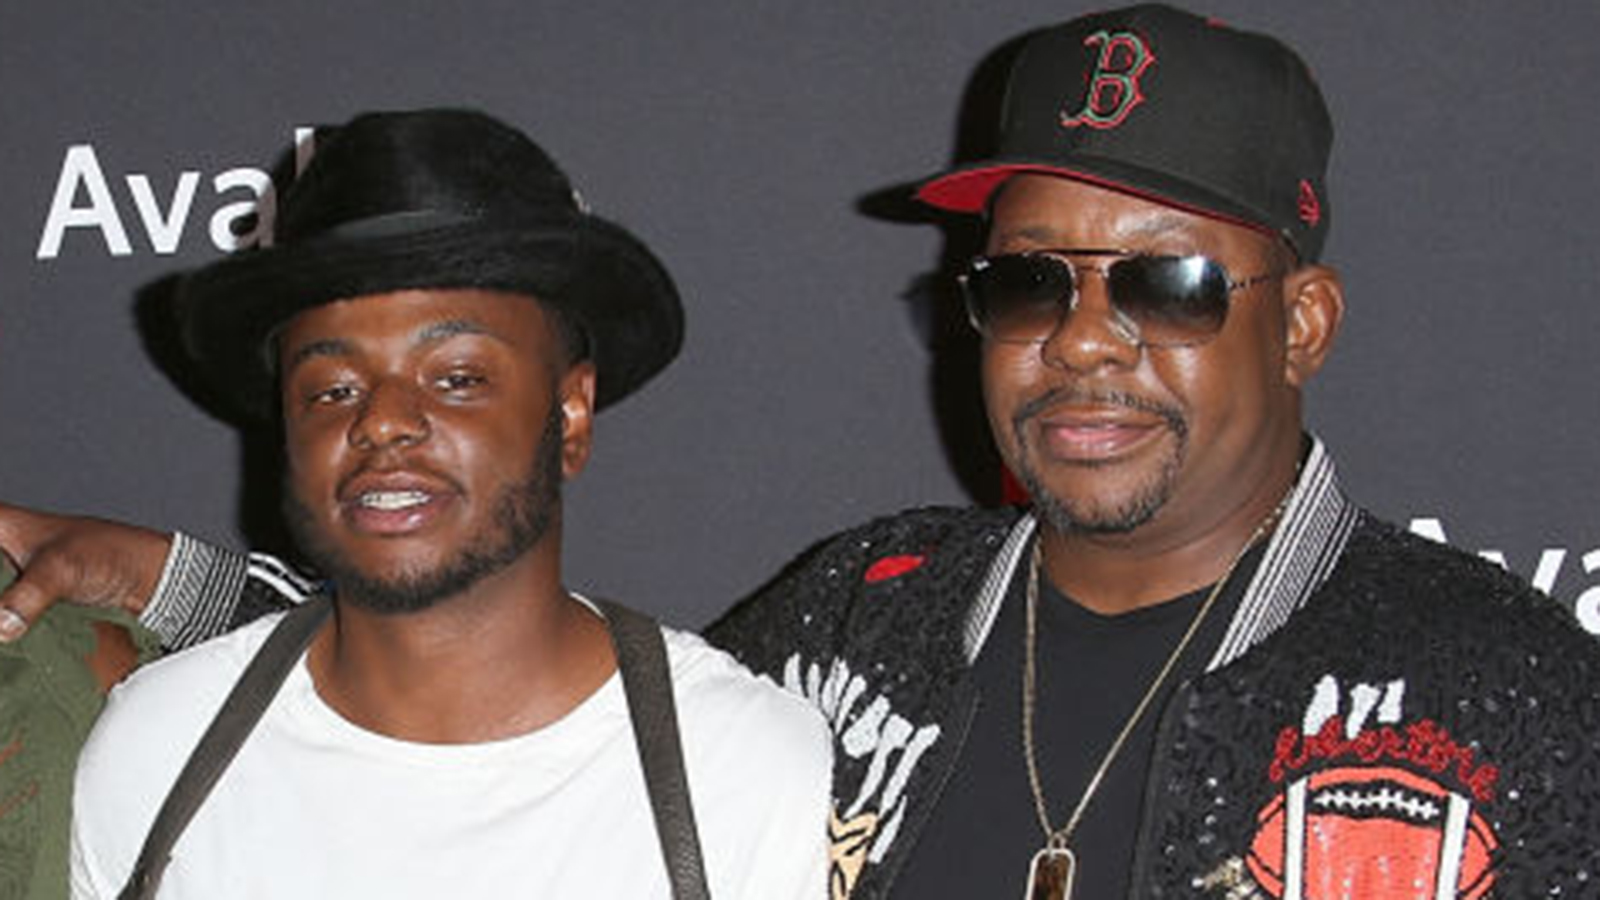 """Bobby Brown Jr., left, and Bobby Brown attend the premiere screening of """"The Bobby Brown Story"""" at the Paramount Theatre in Hollywood on Aug. 29, 2018. (Jesse Grant / Getty Images)"""